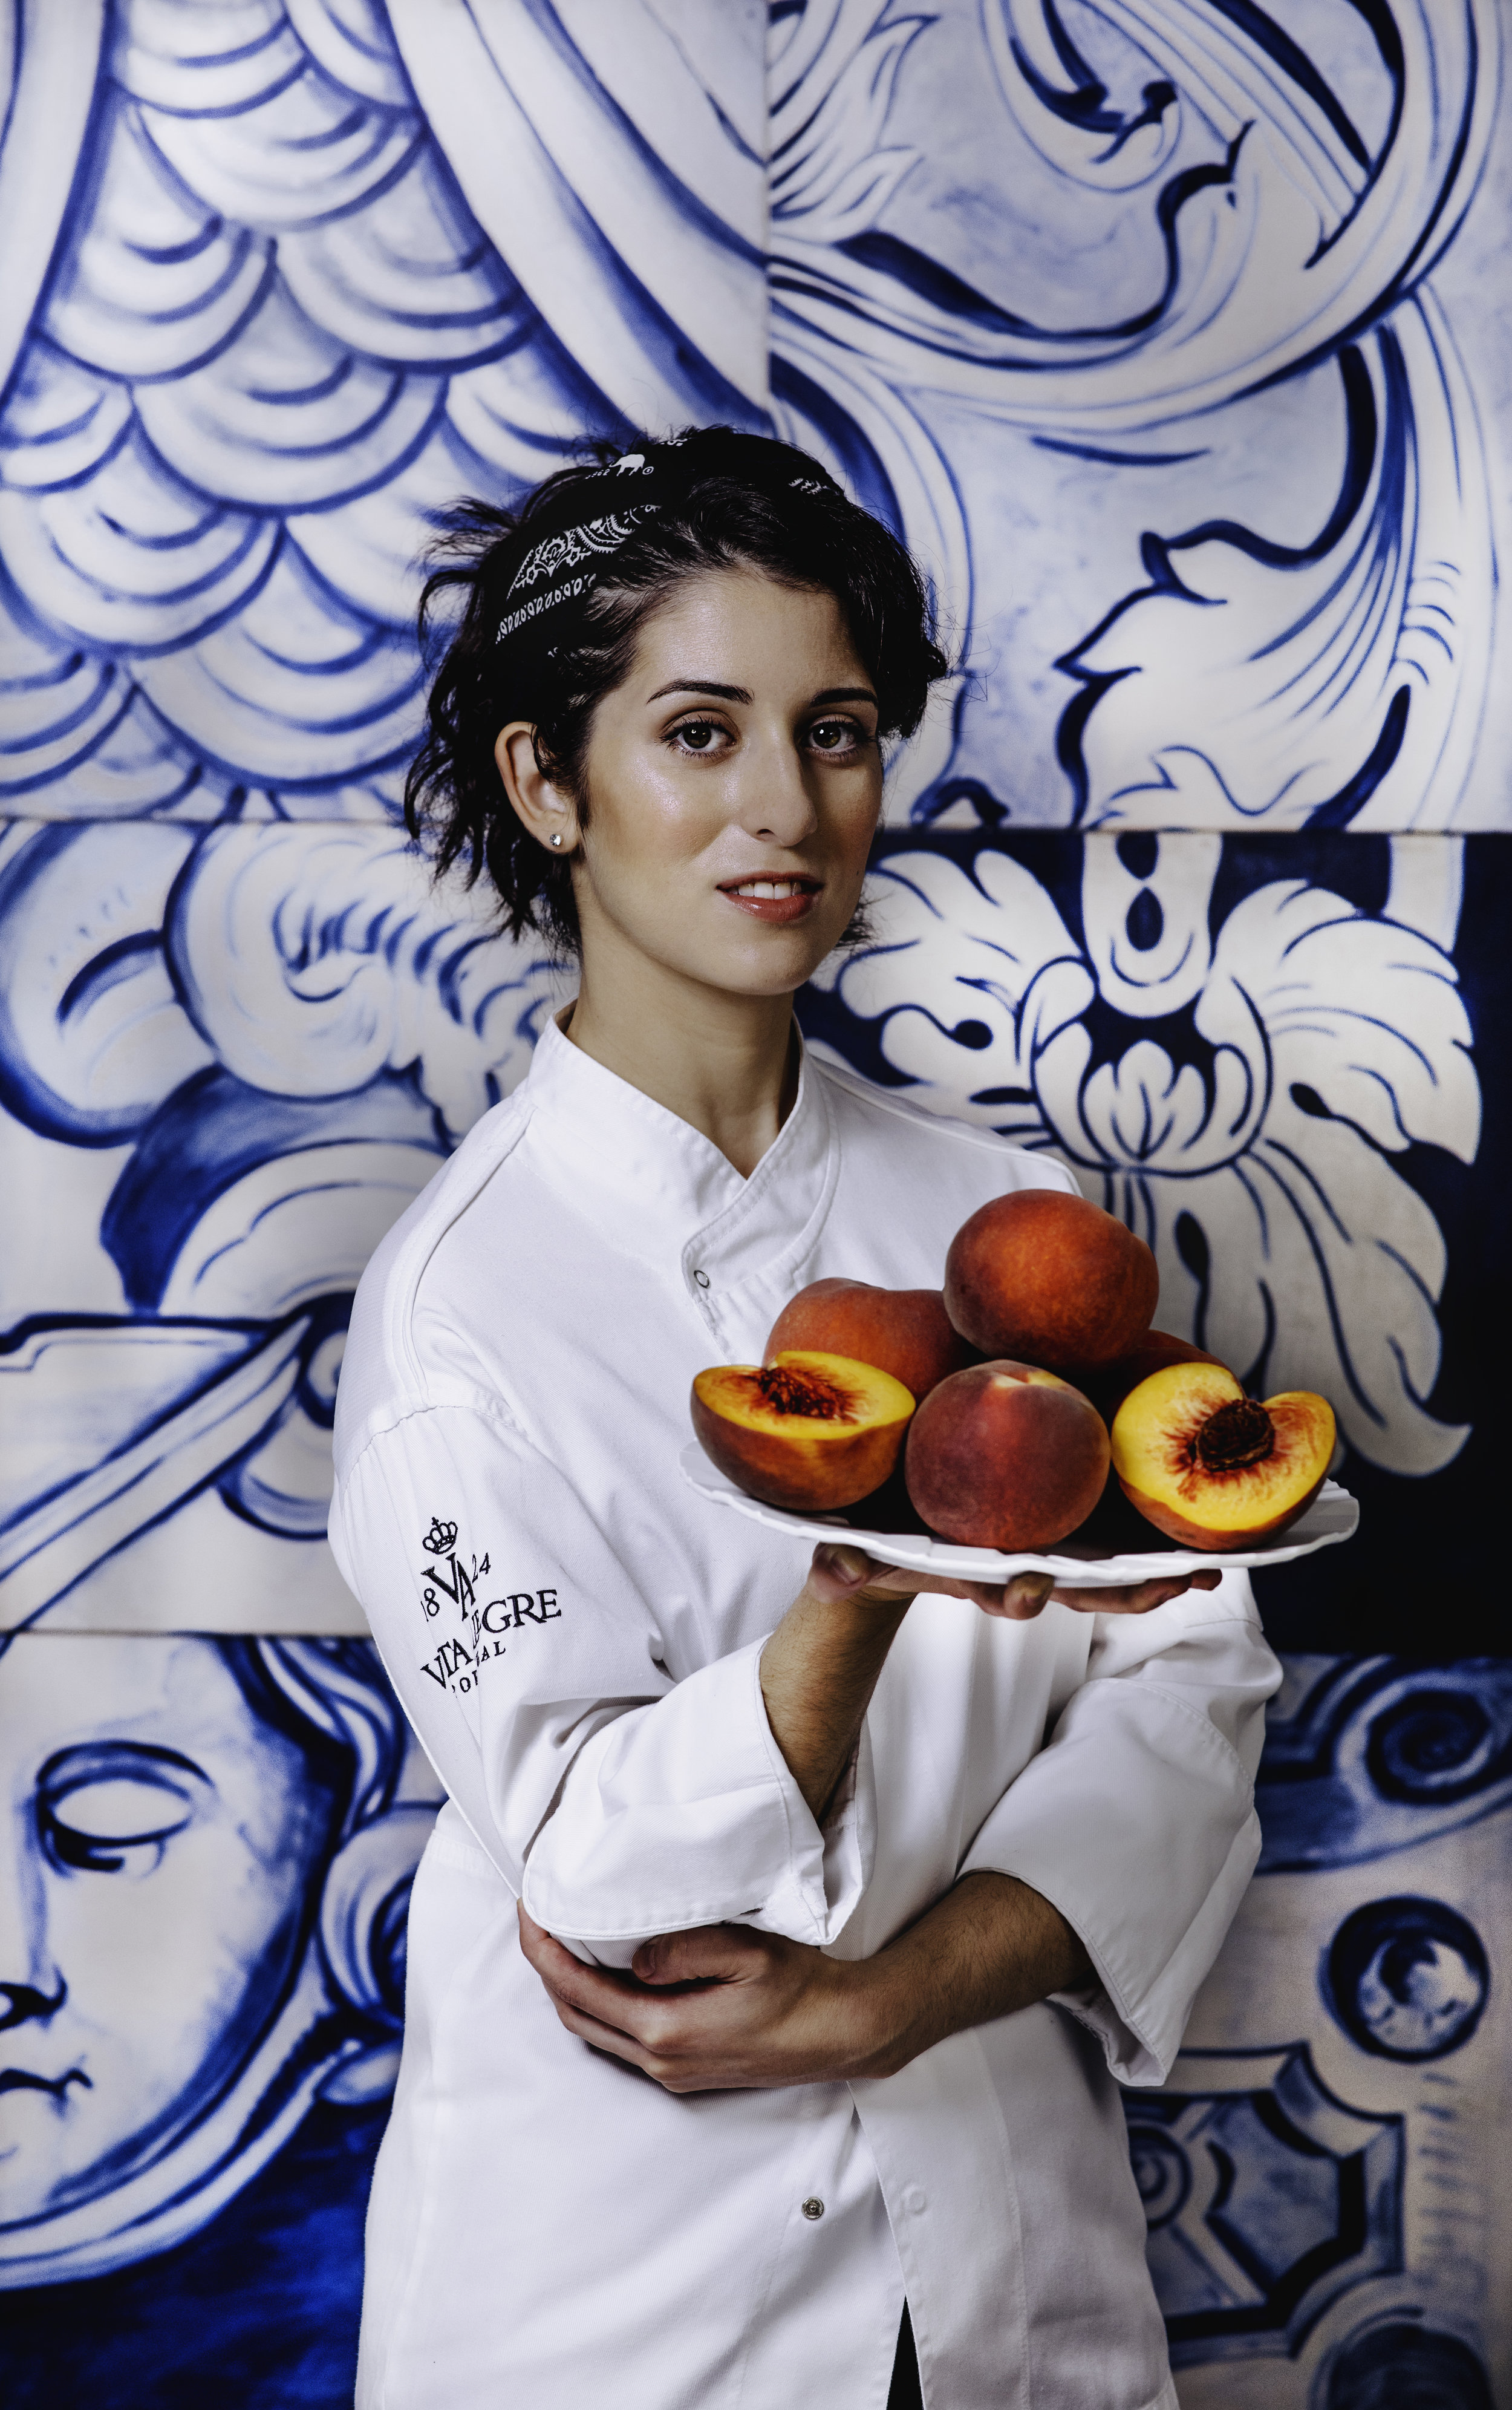 Jessica Carreira, pastry chef and co-owner of Adega restaurant in San Jose, photographed for The Nob Hill Gazette.